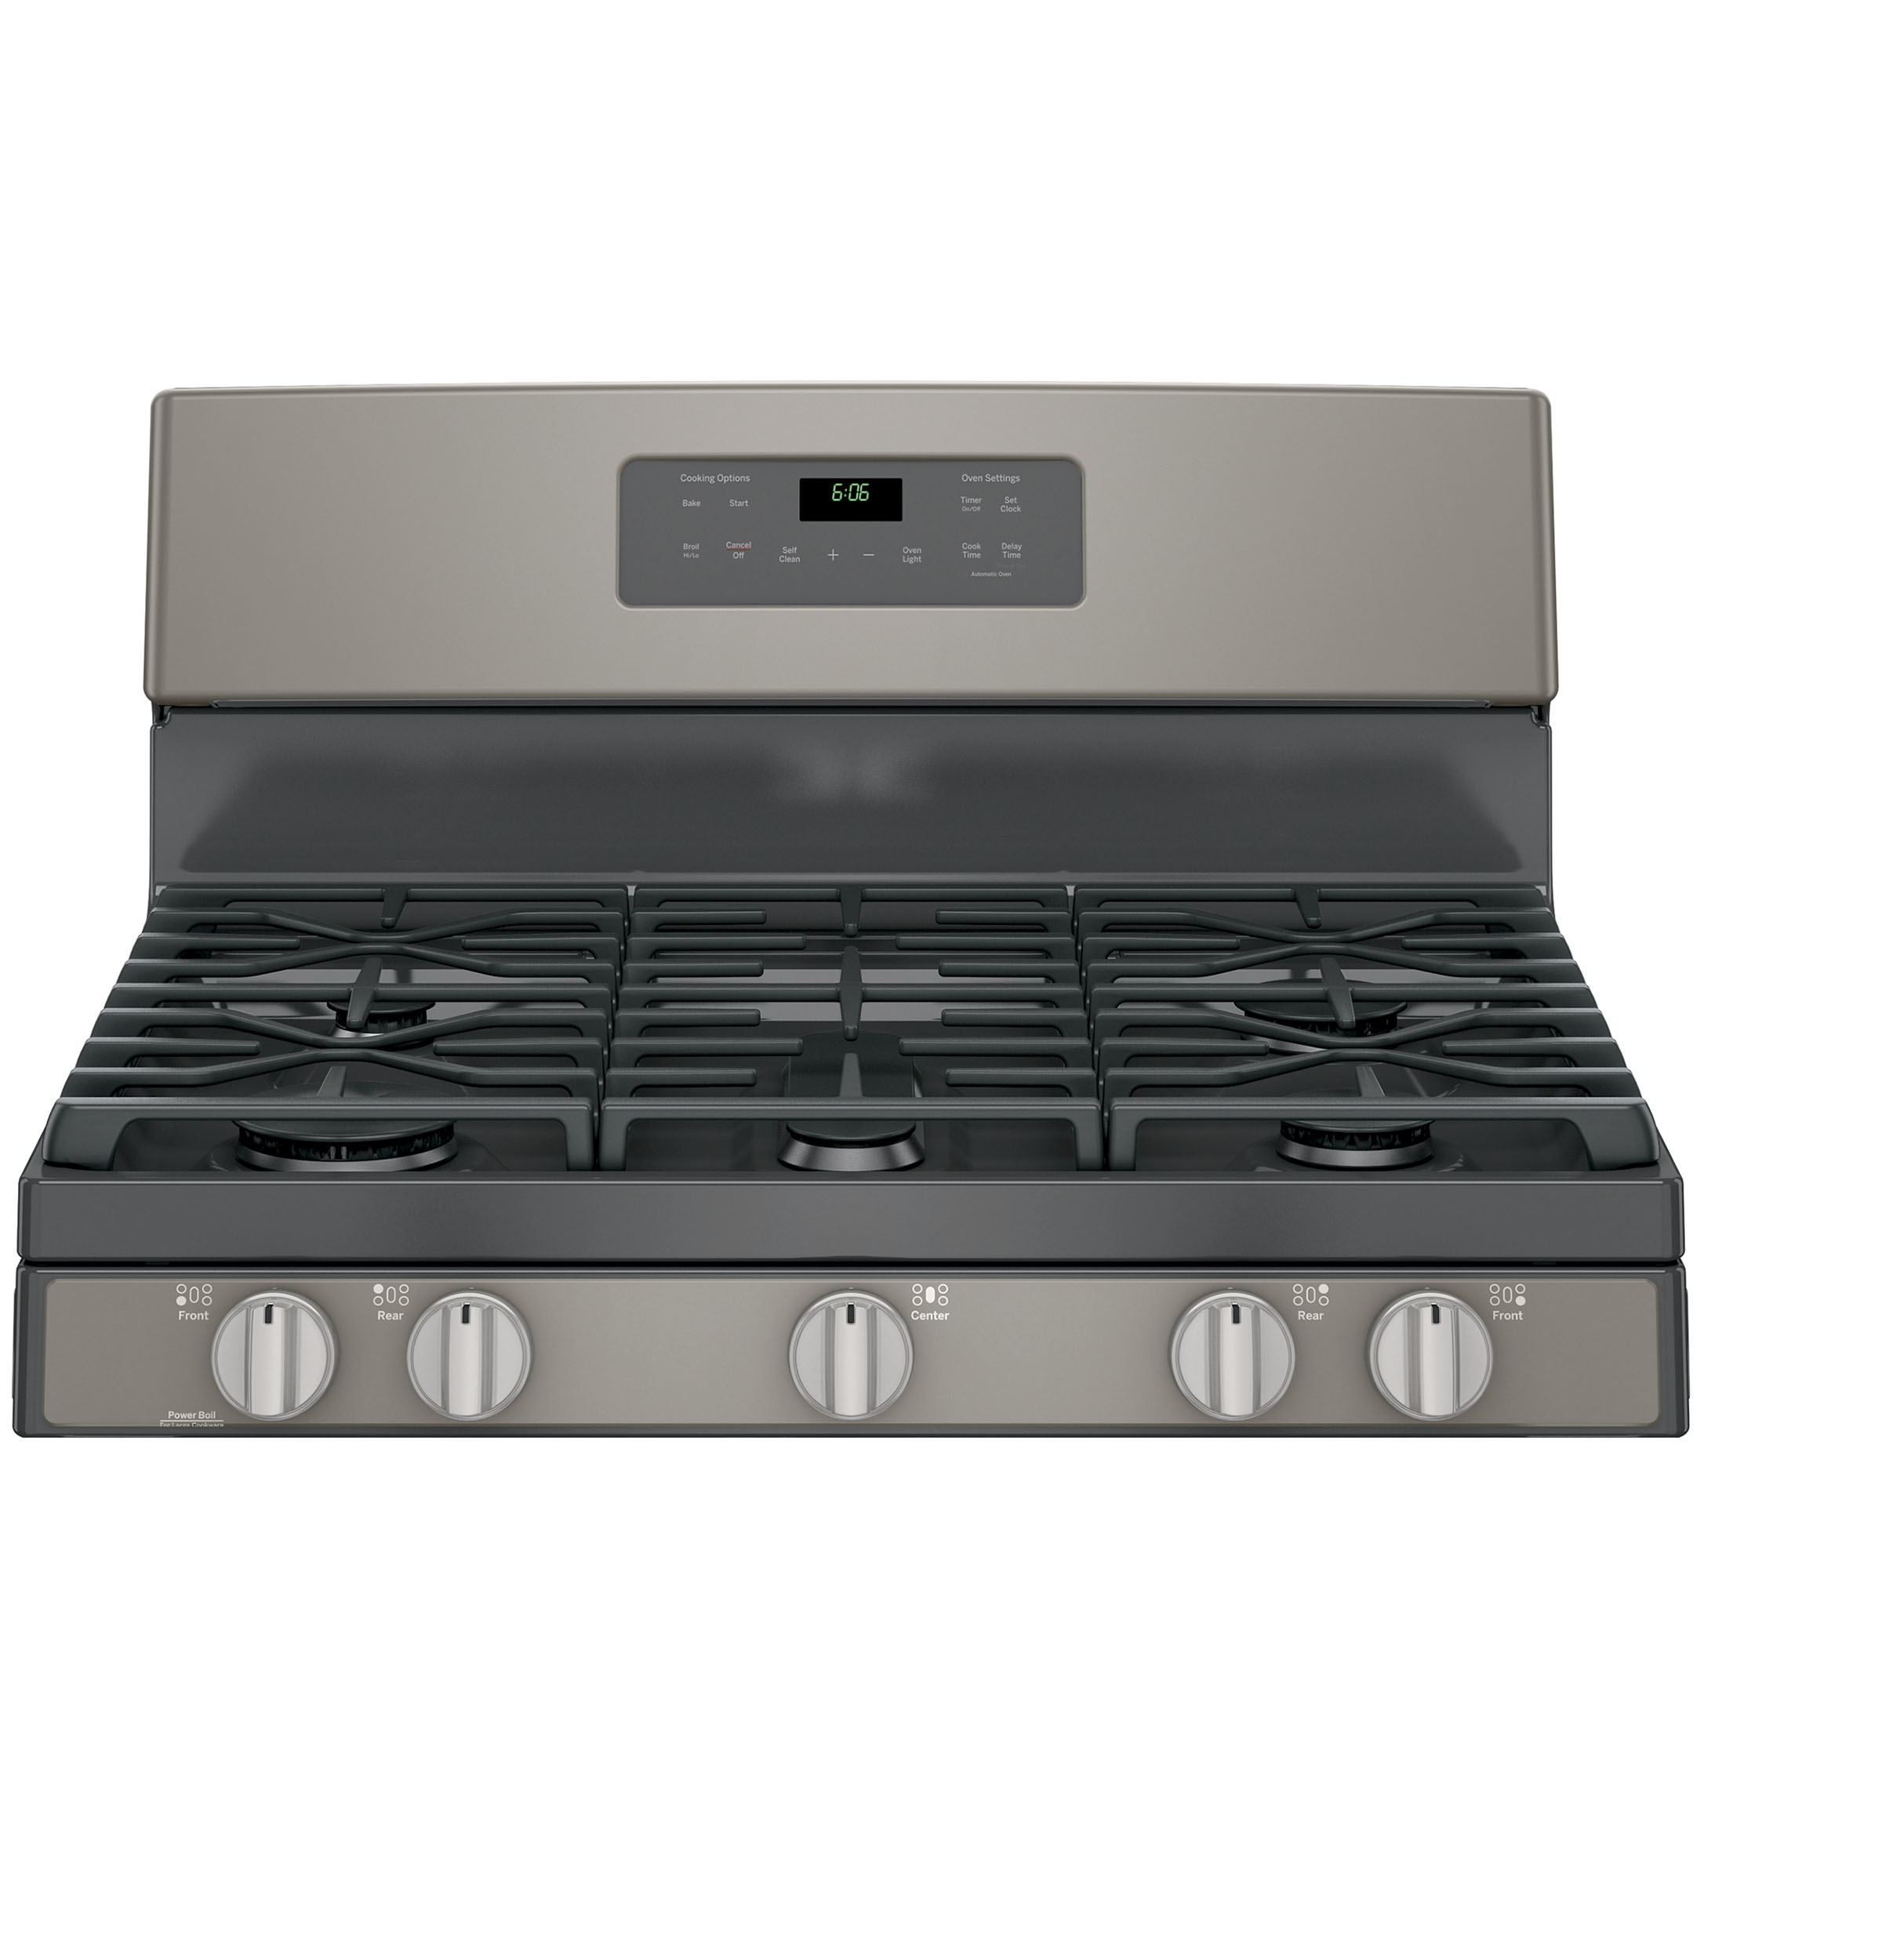 GE Appliances JGB660EEJES 5.0 cu .ft. Freestanding Gas Range - Slate